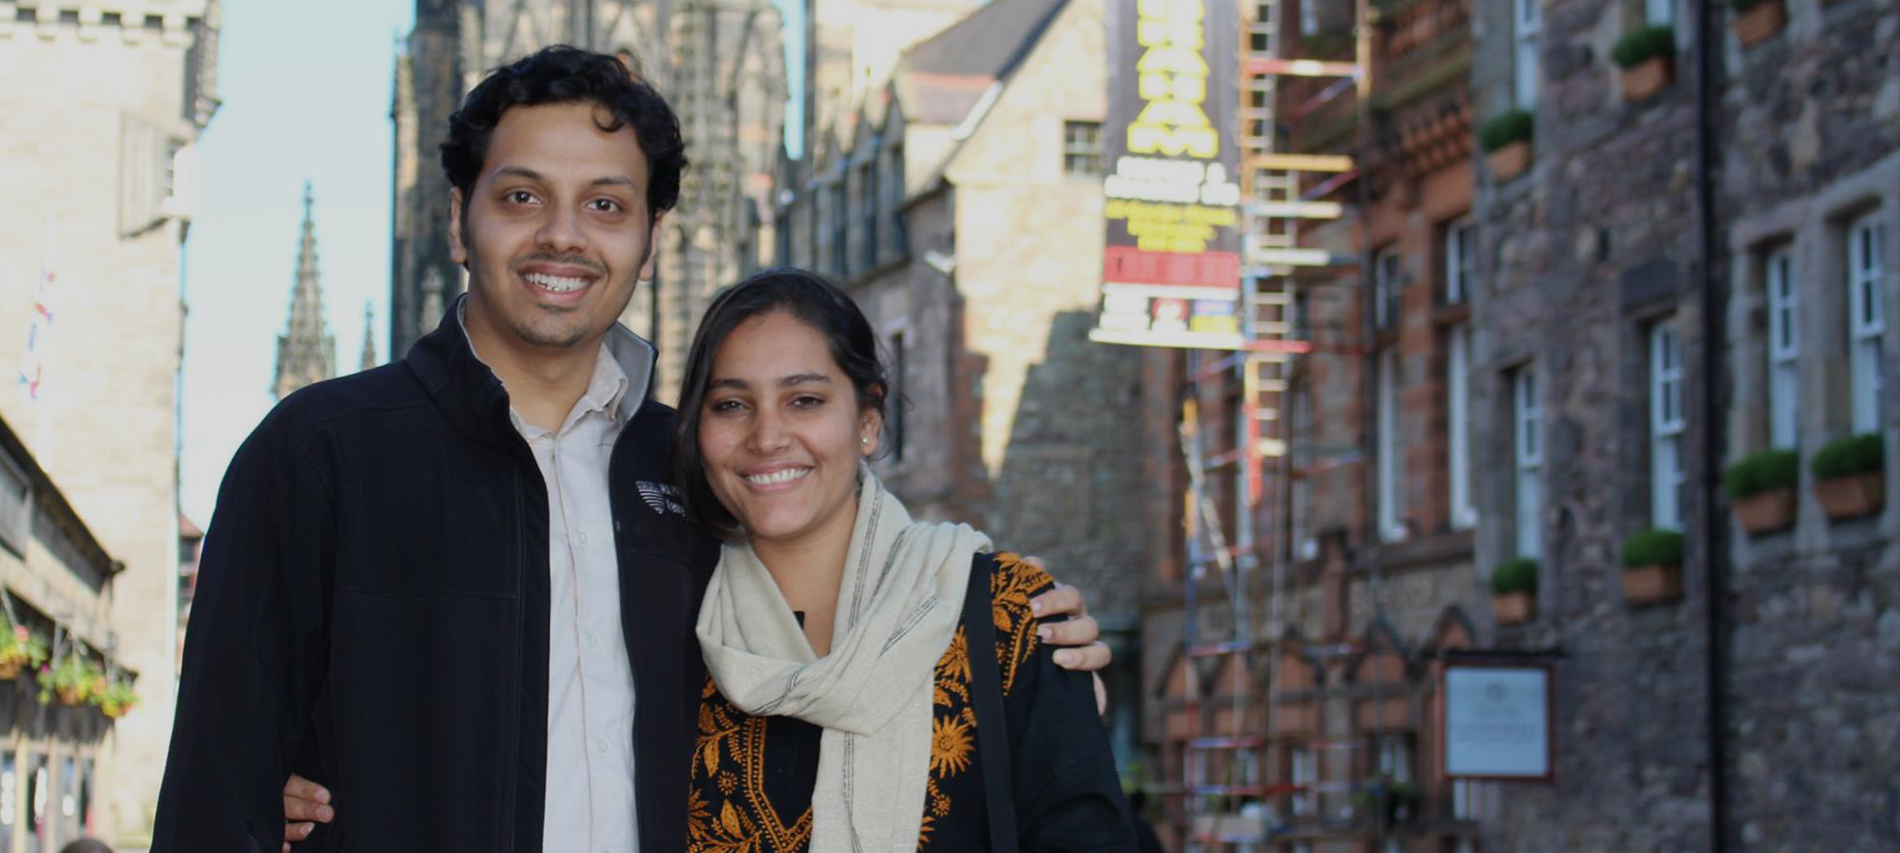 5 Things You Should Know About the Power Couple, Rajat Sethi and Shubhrastha